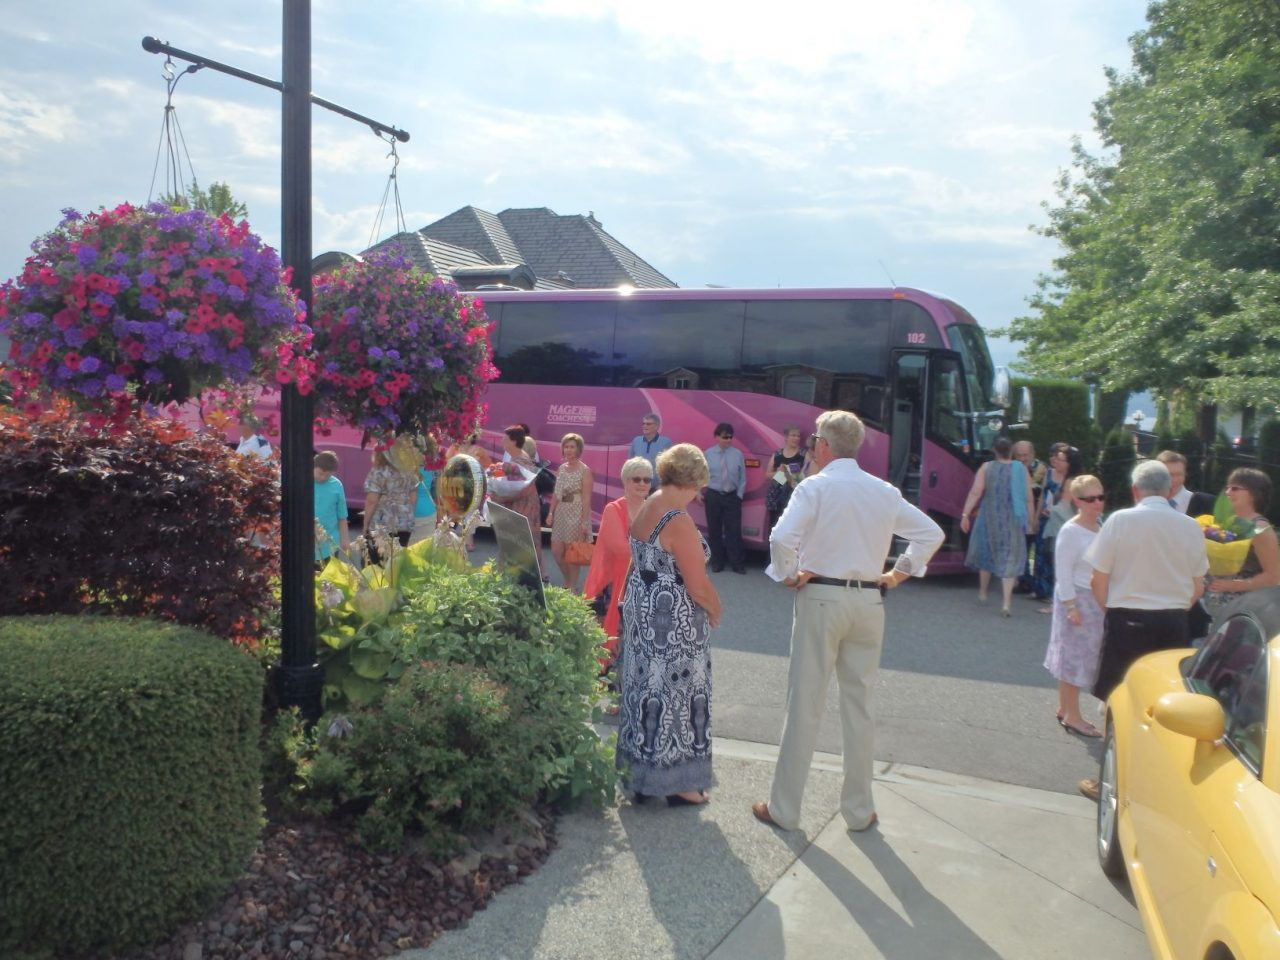 Nagel Coach with party passengers